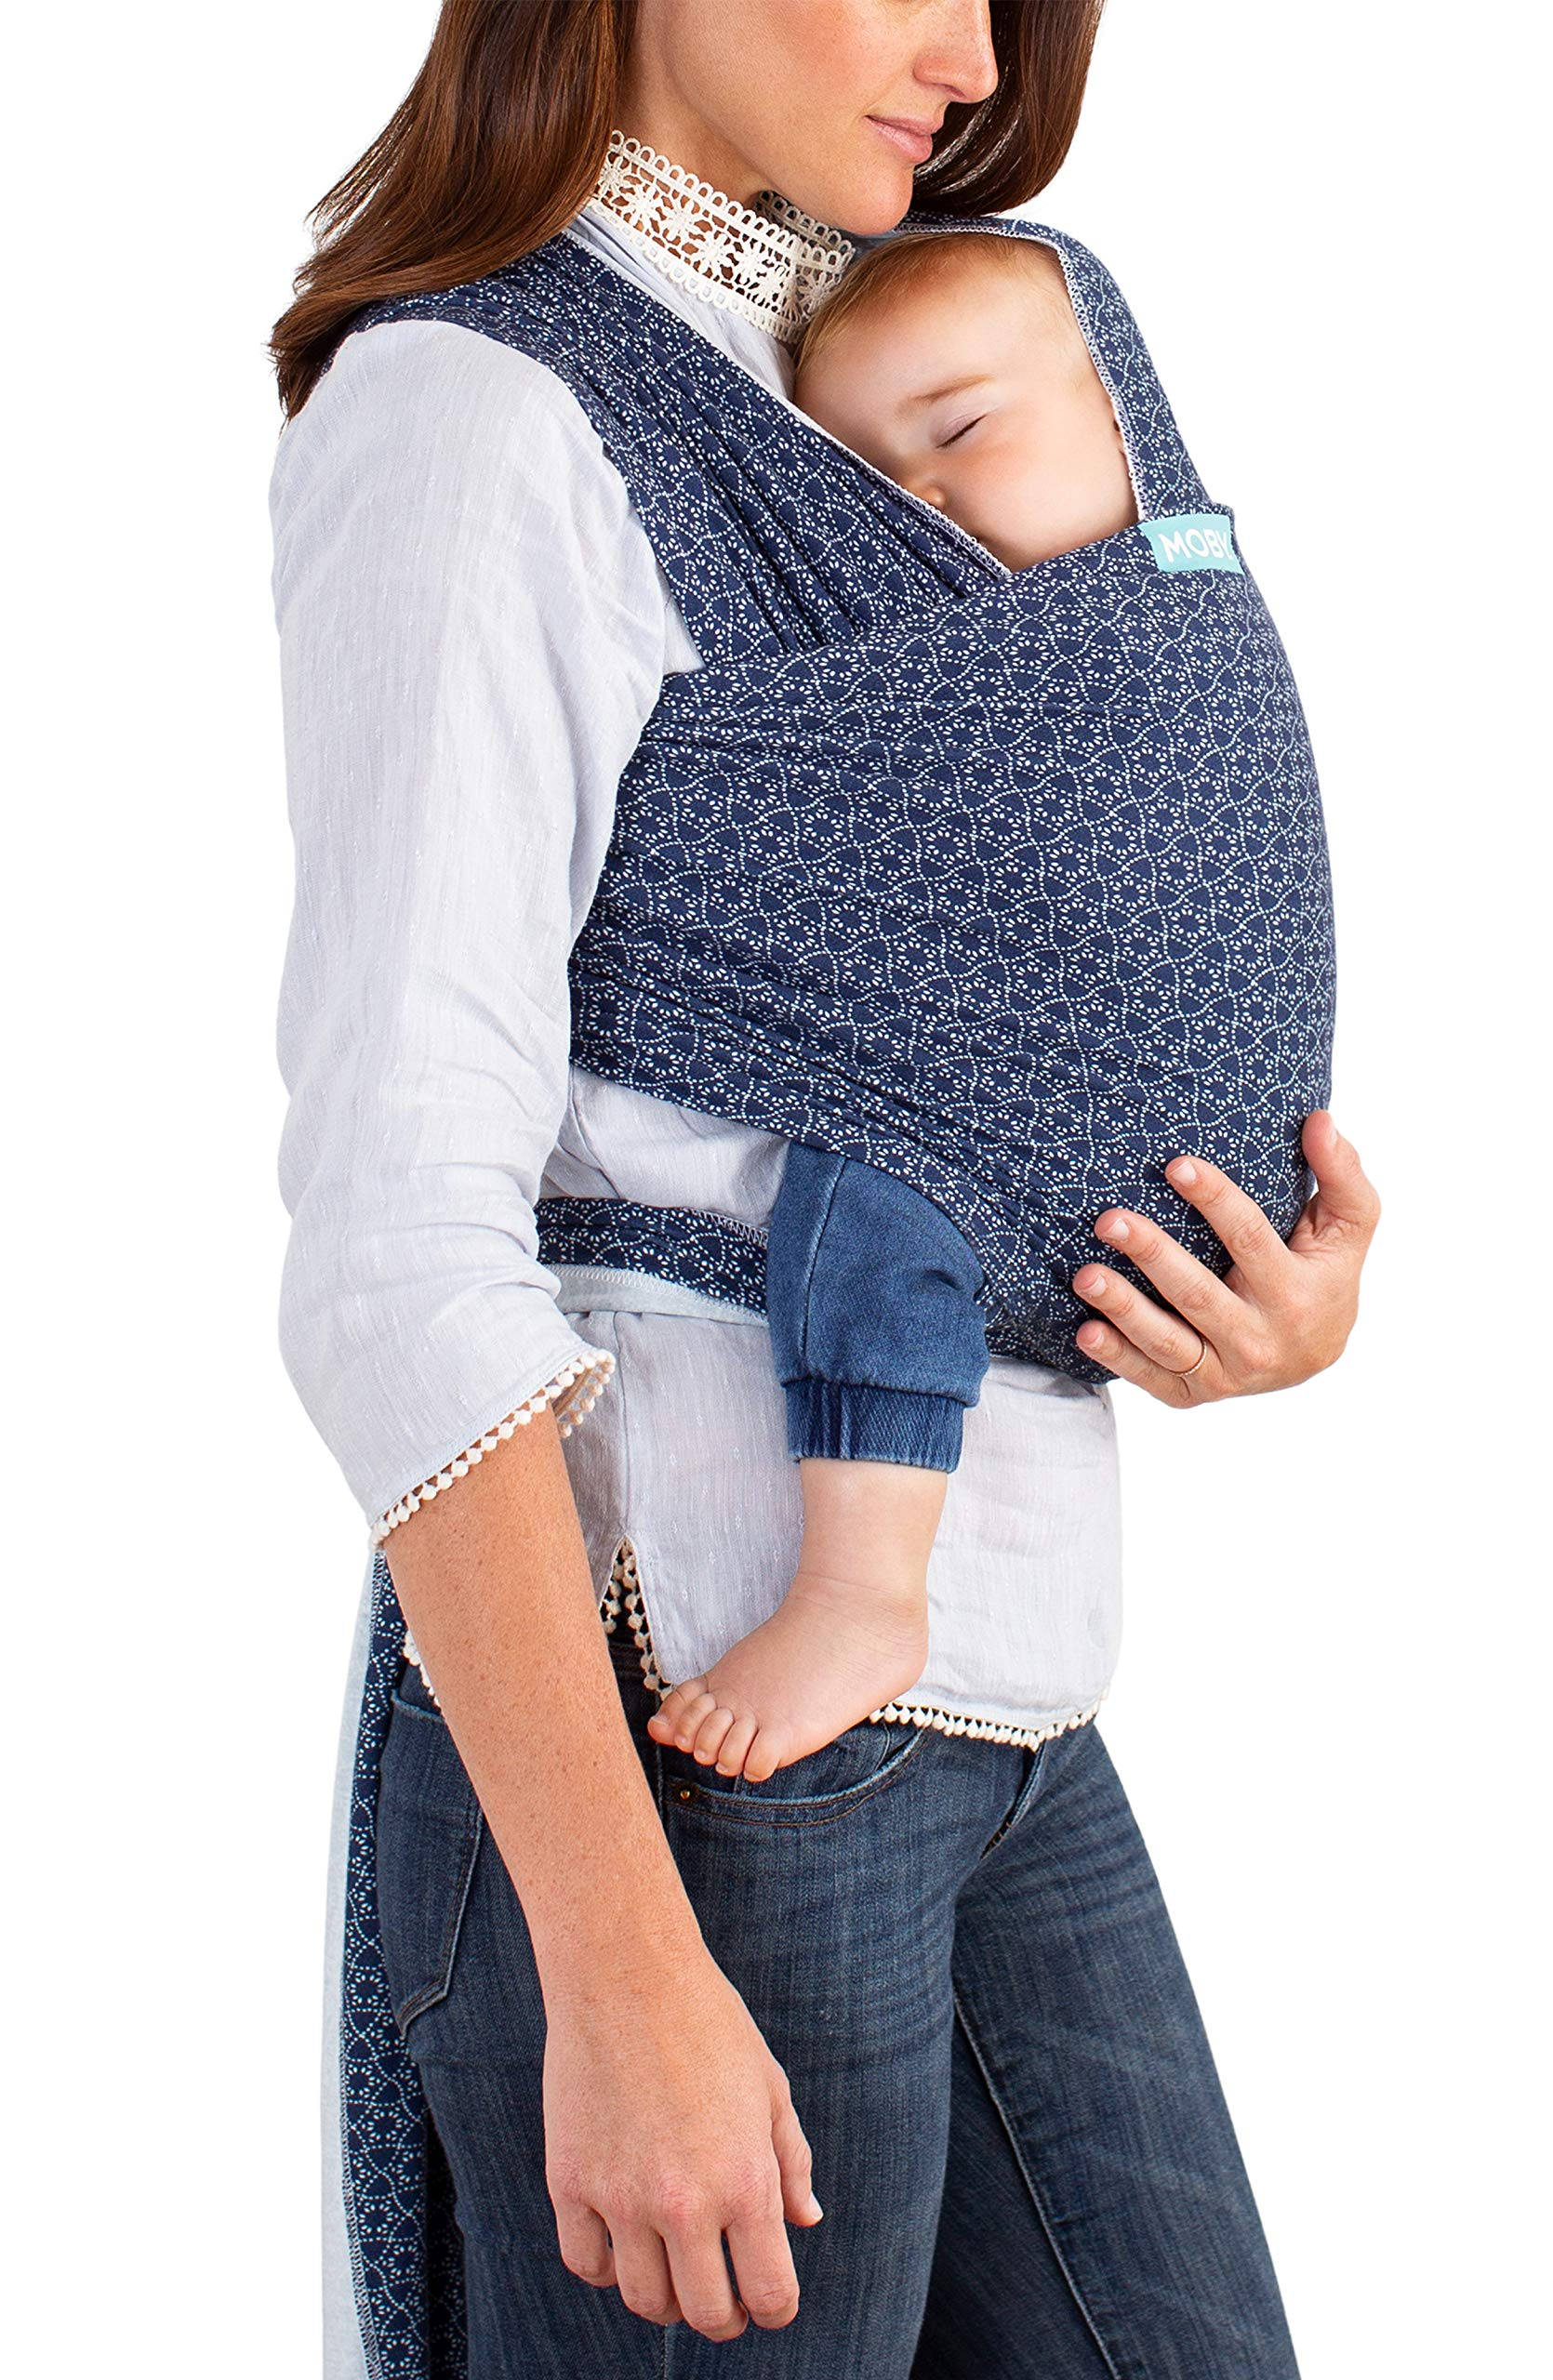 MOBY Evolution Baby Wrap Carrier for Newborn to Toddler up to 30lbs, Baby Sling from Birth, One Size Fits All, Breathable Stretchy Made from 70% Viscose 30% Cotton, Unisex Moby 70% Viscose / 30% Cotton Knit One-size-fits-all Grows with baby, from newborn to toddler 8